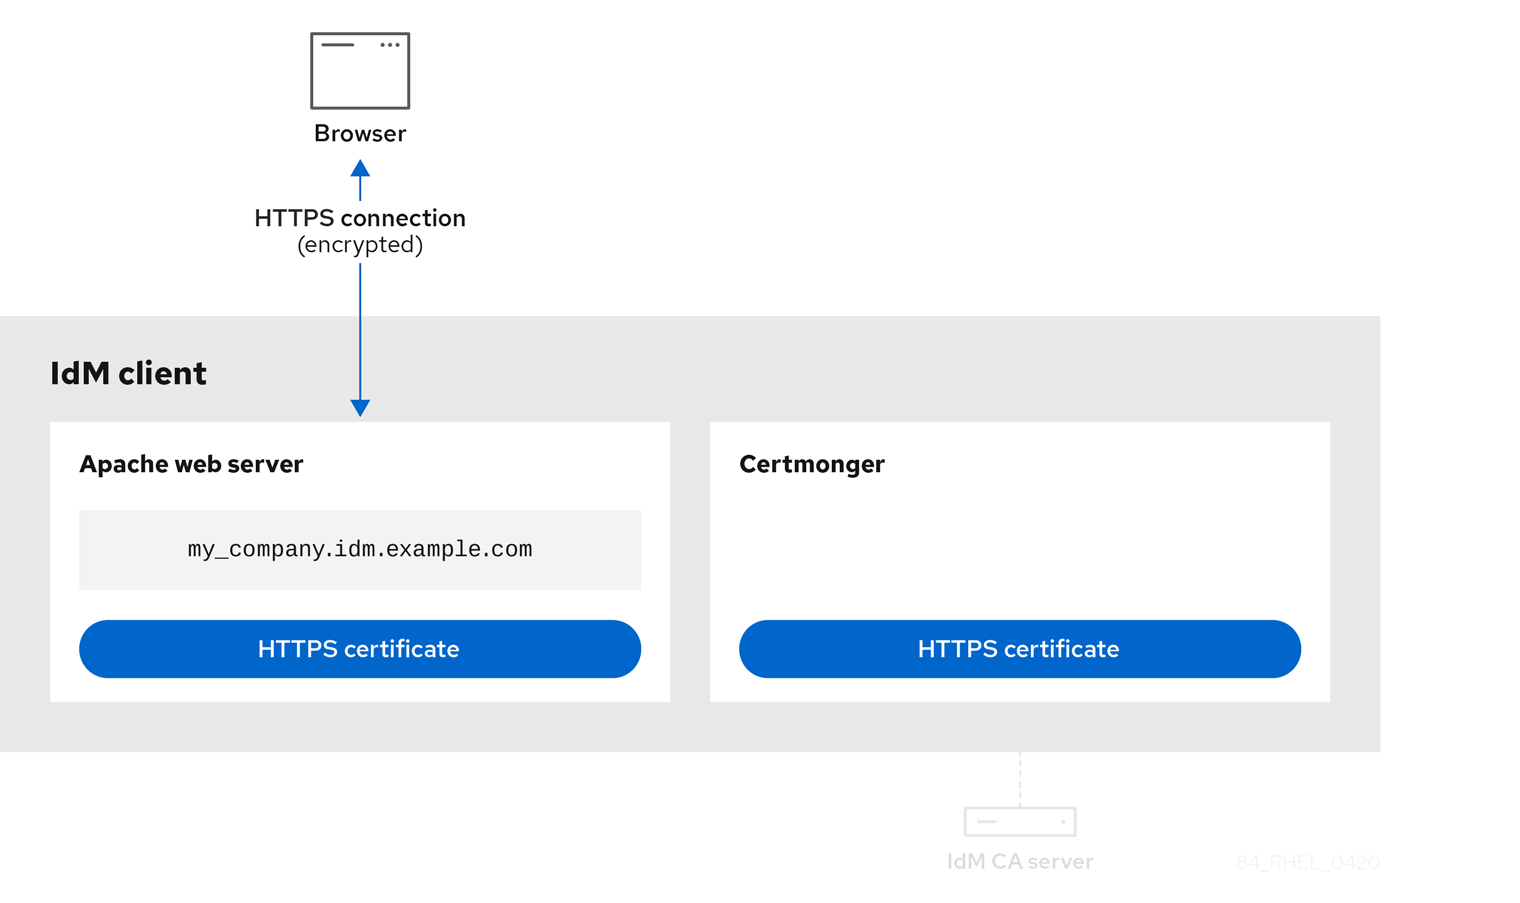 A diagram displaying an image of an HTTPS certificate assigned to the Apache web server and one assigned to the certmonger service. There are arrows between the browser and the Apache webserver showing that the connection is now an encrypted HTTPS connection. The connection between the certmonger service and the IdM CA server is inactive.